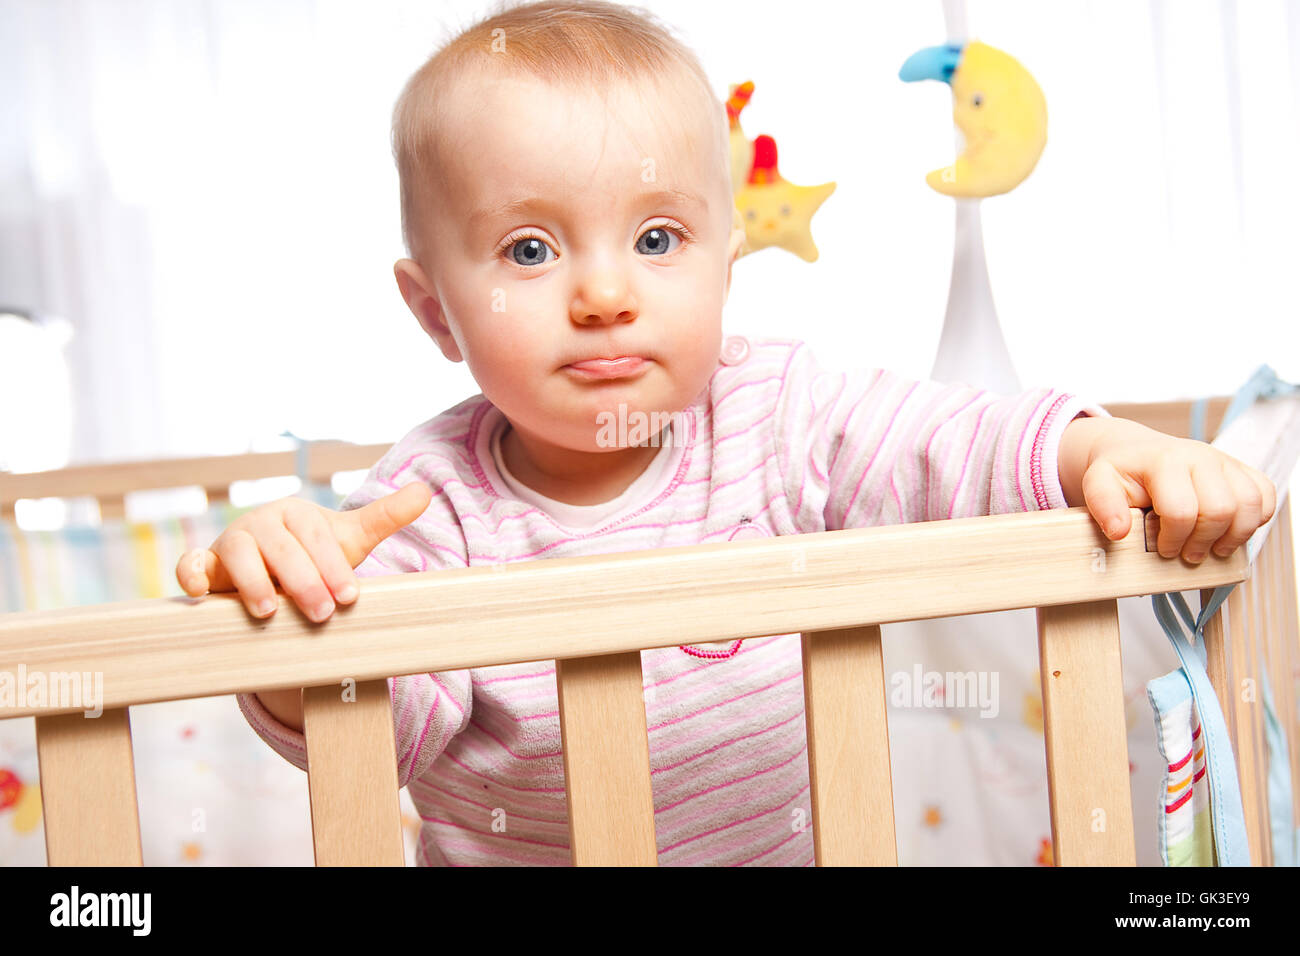 baby hand hands - Stock Image